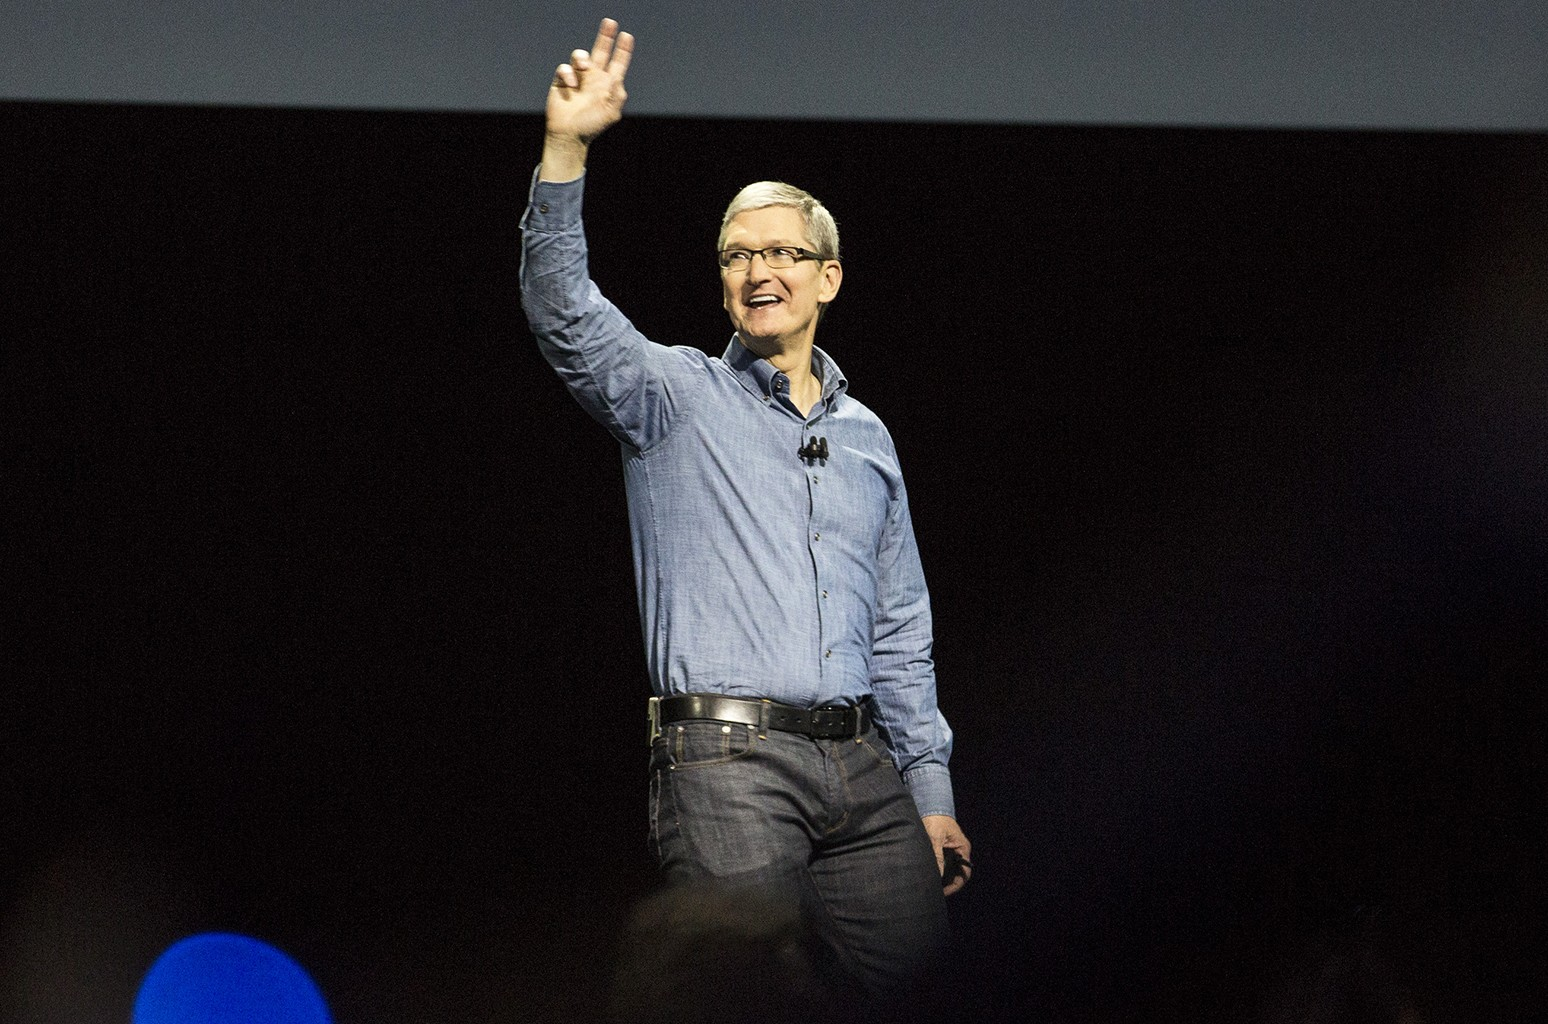 Apple CEO Tim Cook speaks at an Apple event at the Worldwide Developer's Conference